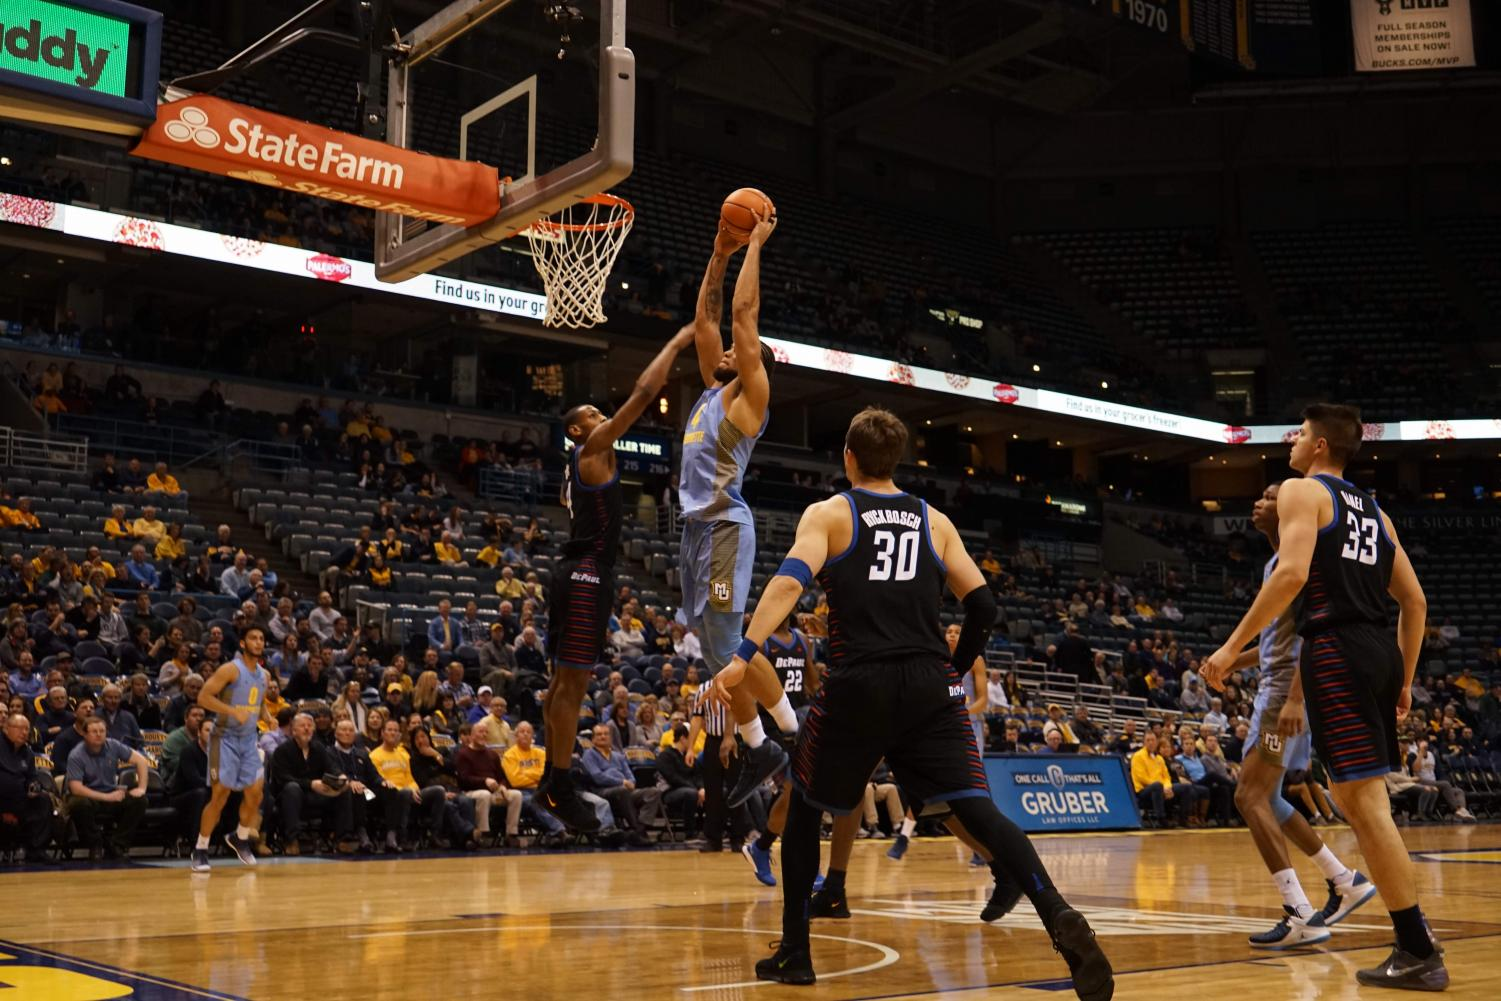 Theo John scored a career-high 12 points.